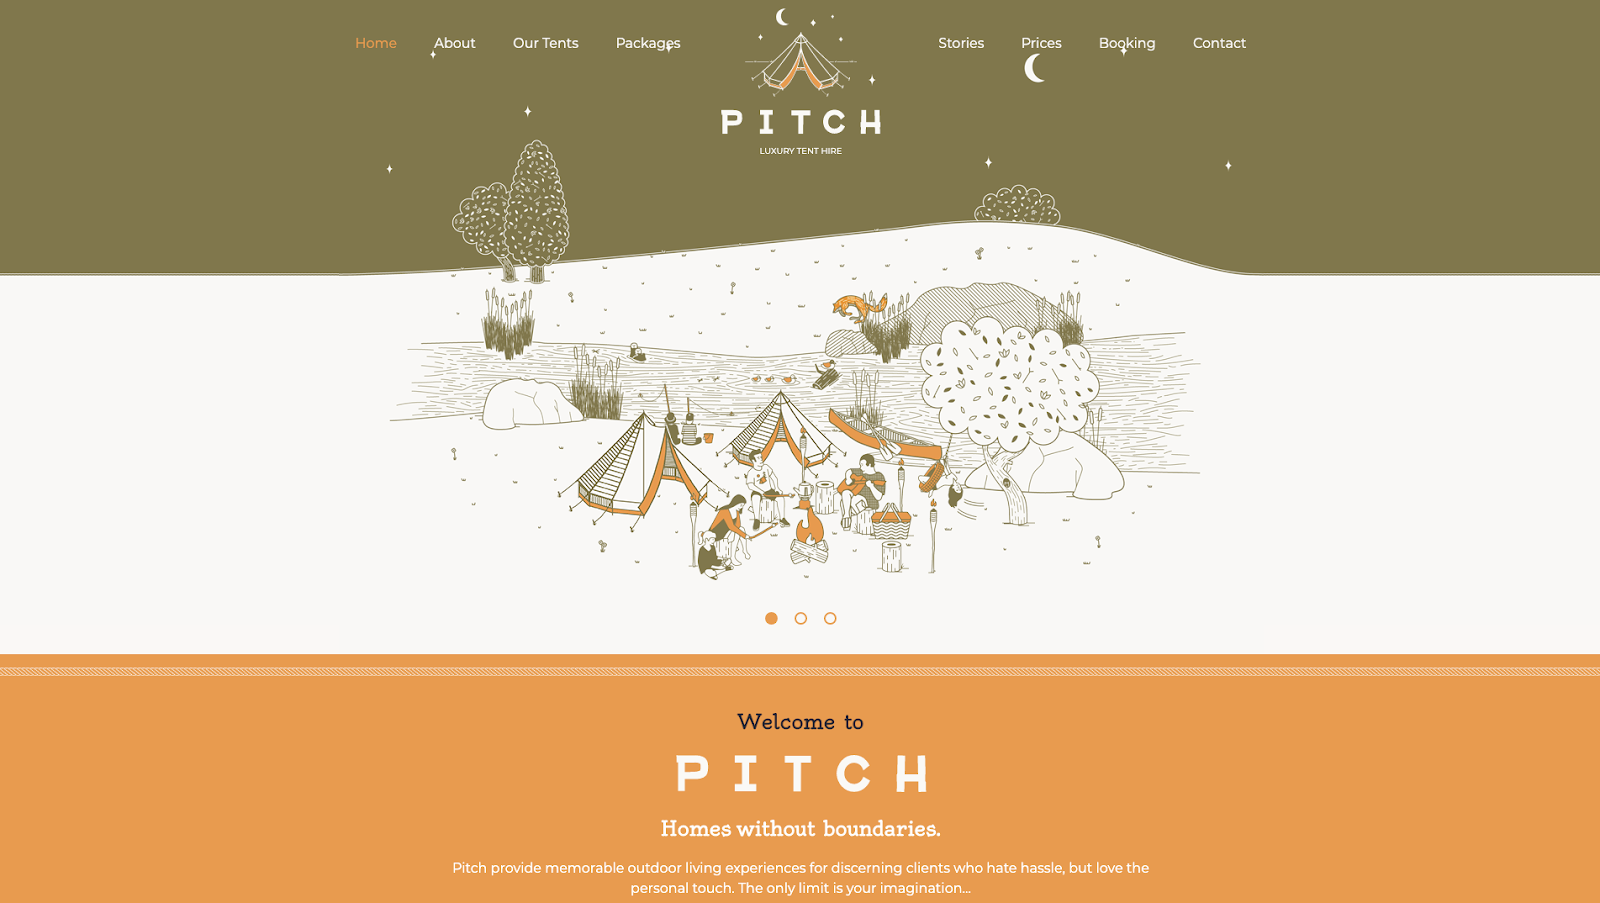 London-based Pitch uses illustrative website design to tell people about their luxurious camping tents.